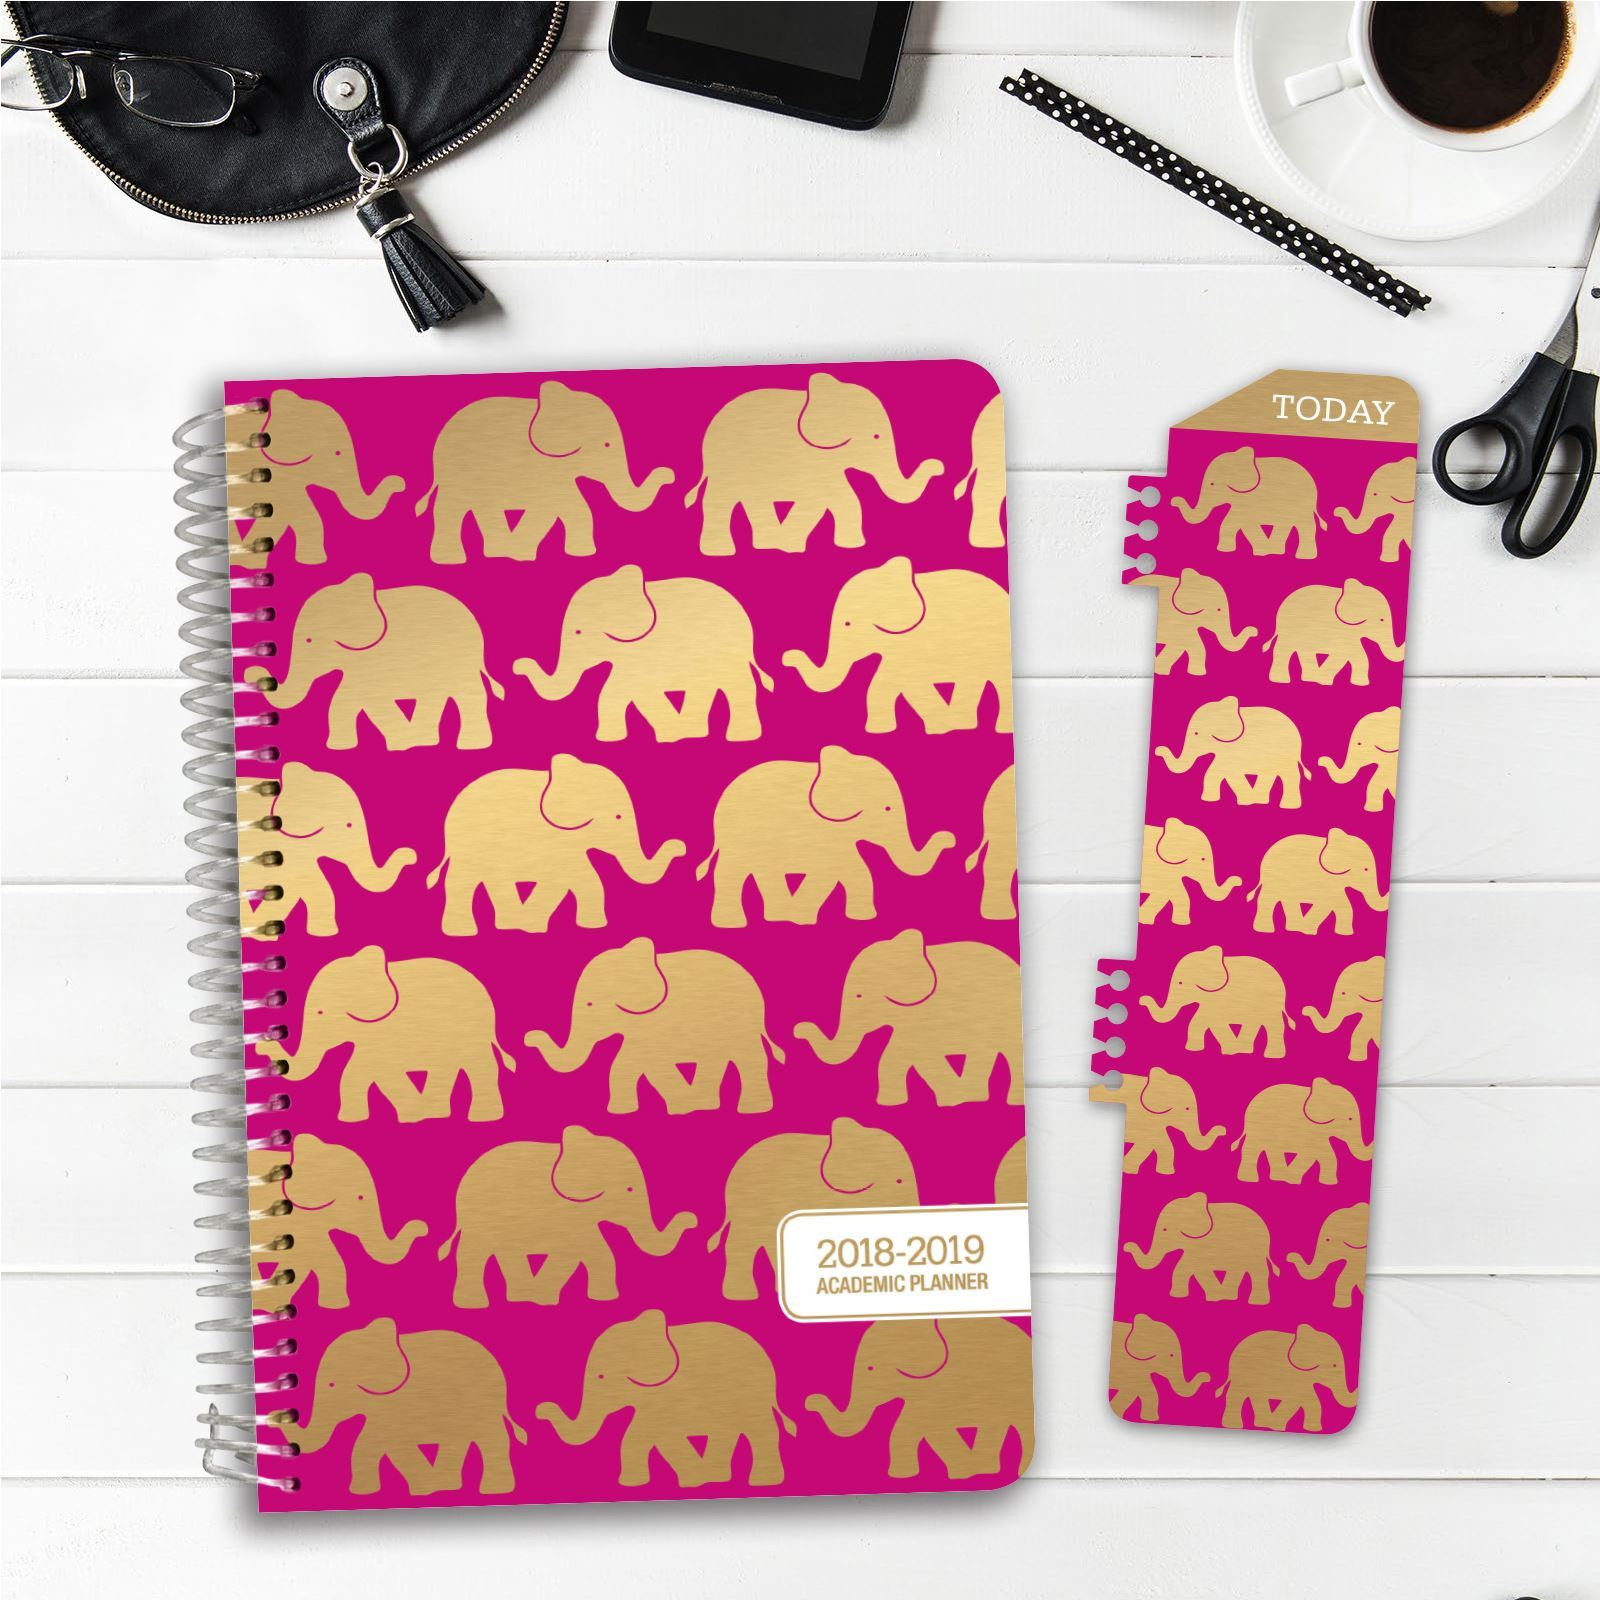 photograph relating to Hardcover Daily Planner named HARDCOVER Educational 12 months Planner 2018-2019 (Elephants)